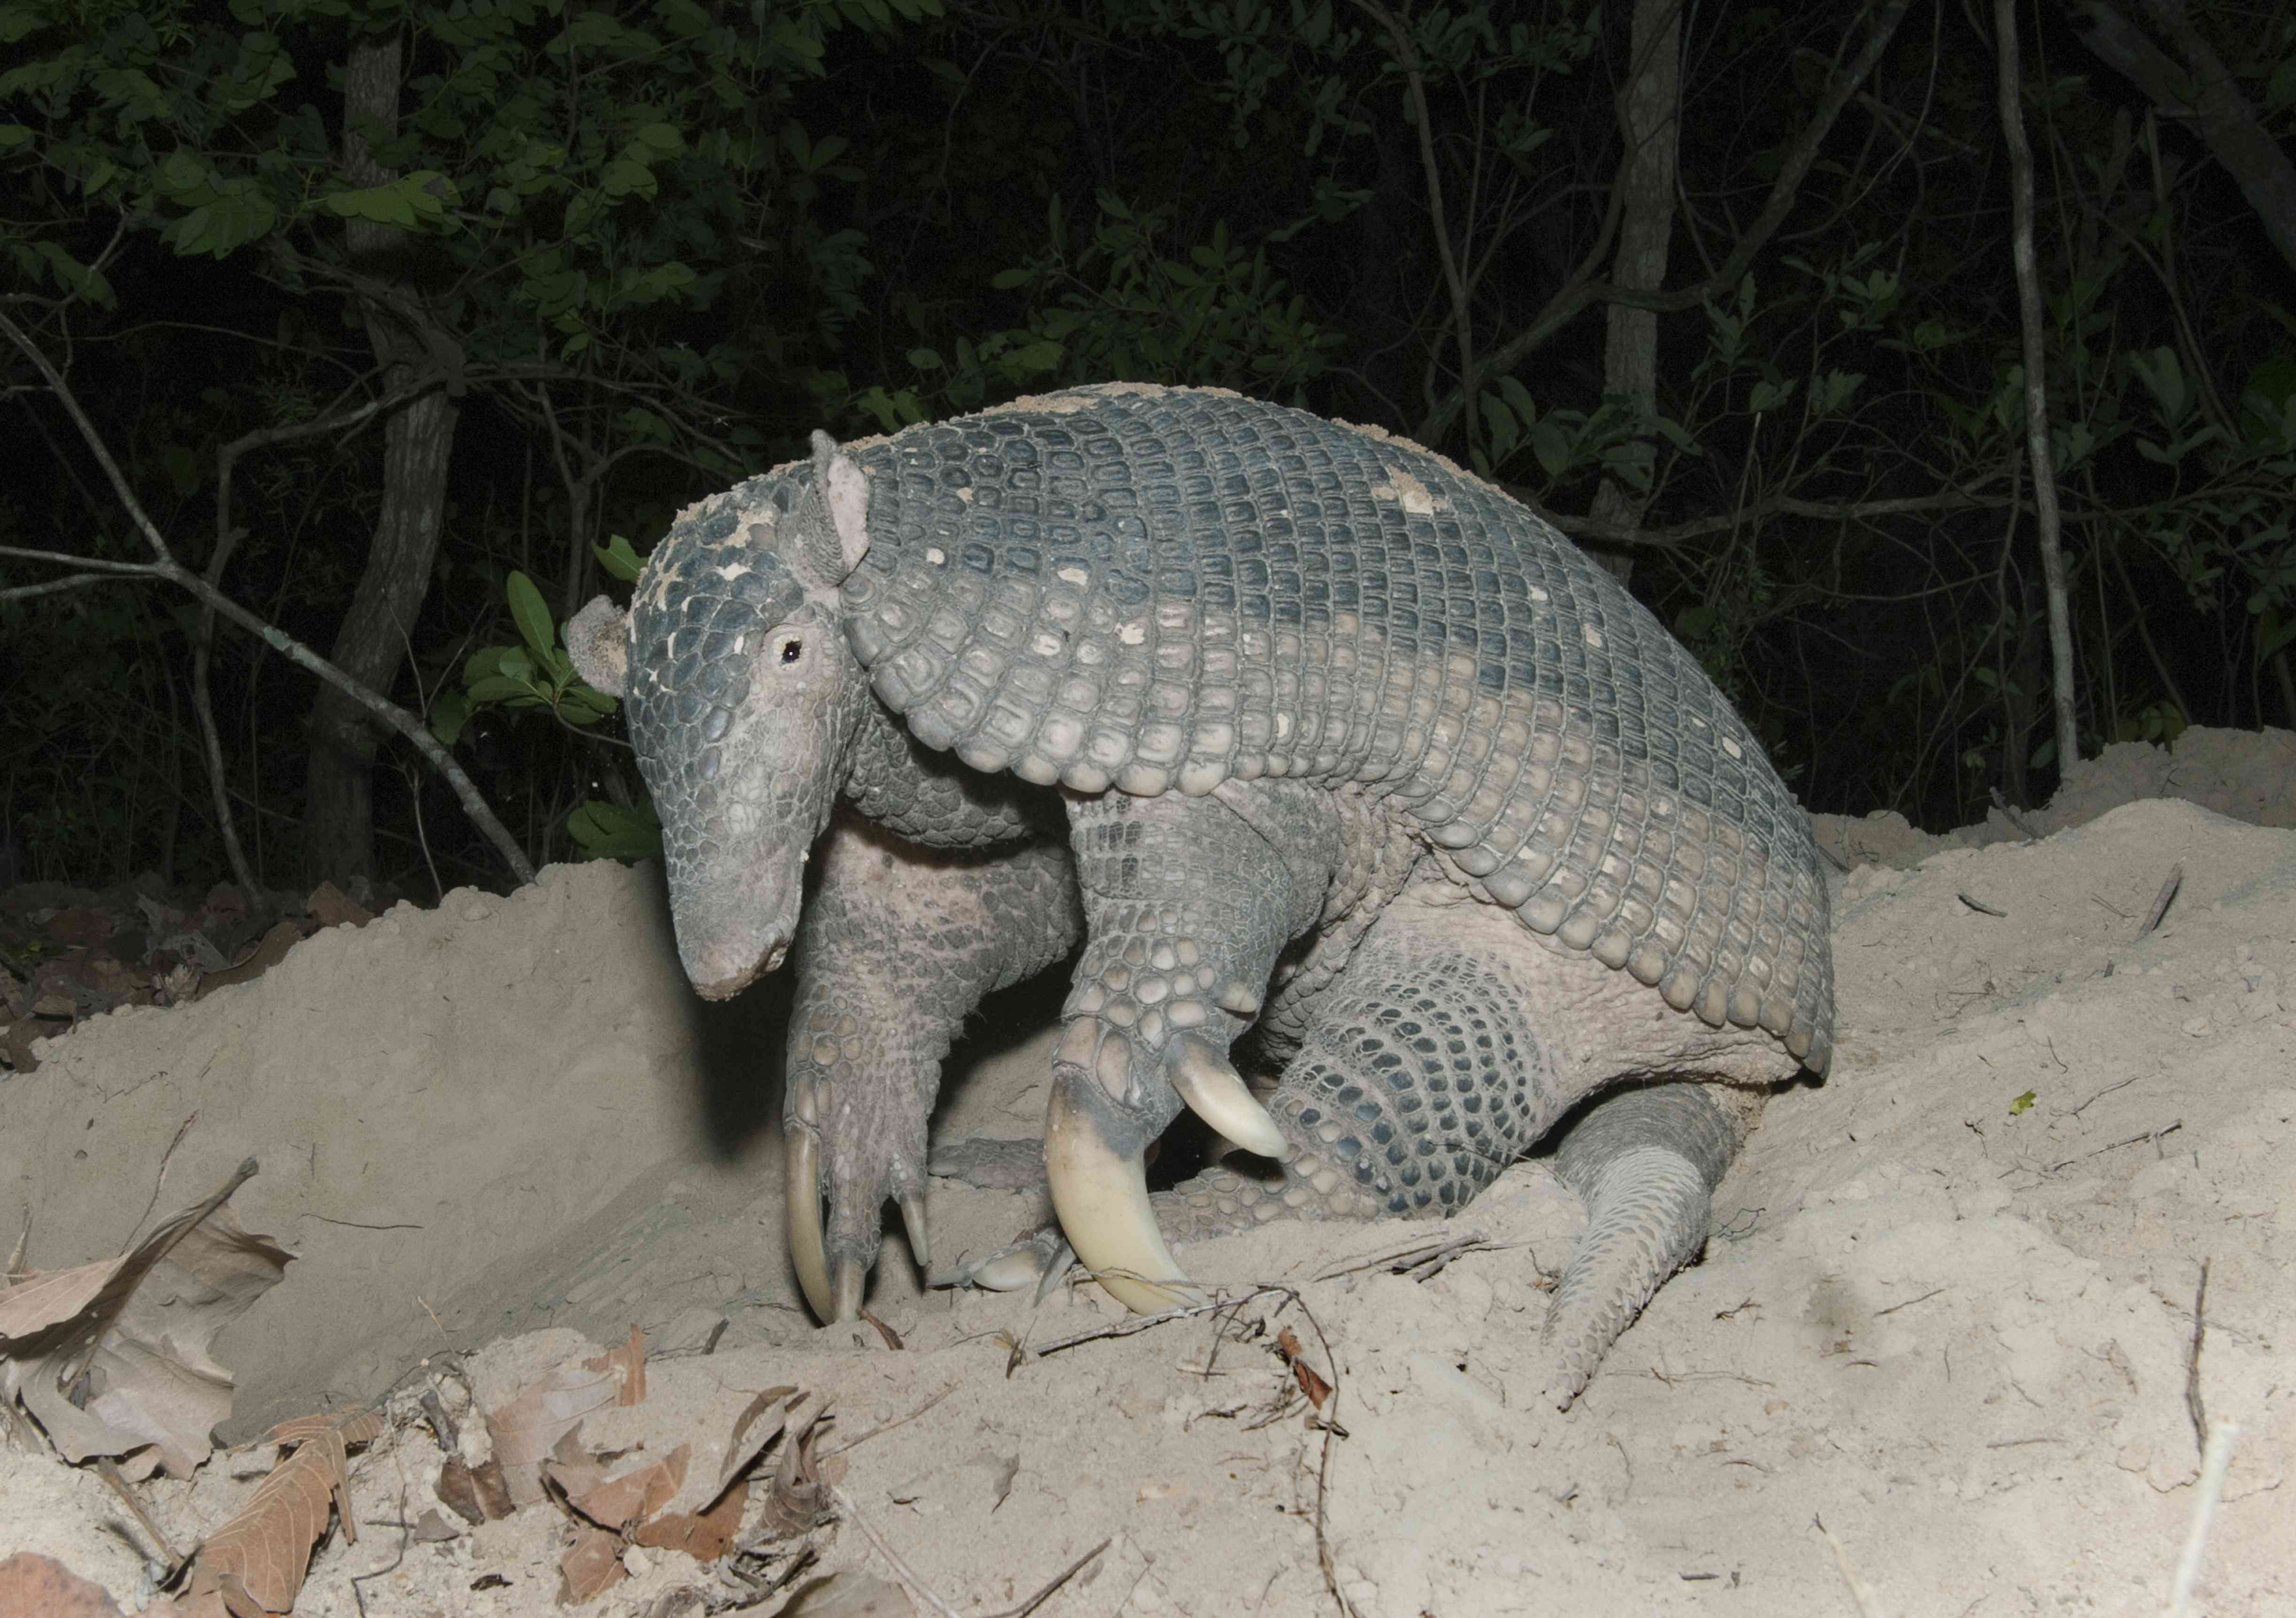 Nighttime photo of giant armadillo with large claws, prominent ears, and light brown and black carapace